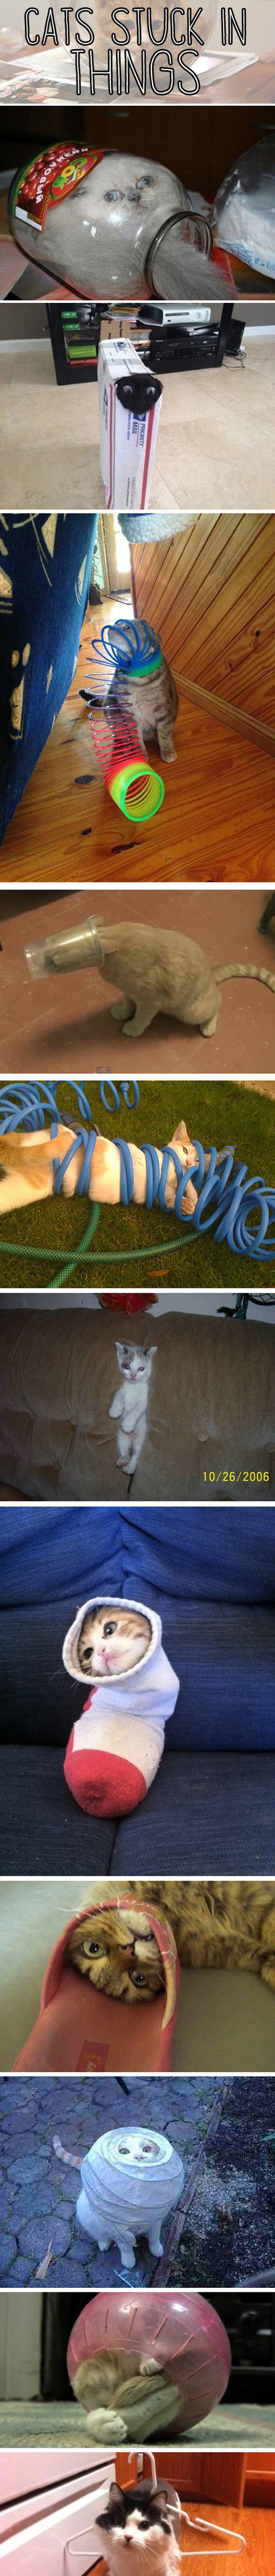 Cats Who Got Stuck In Things